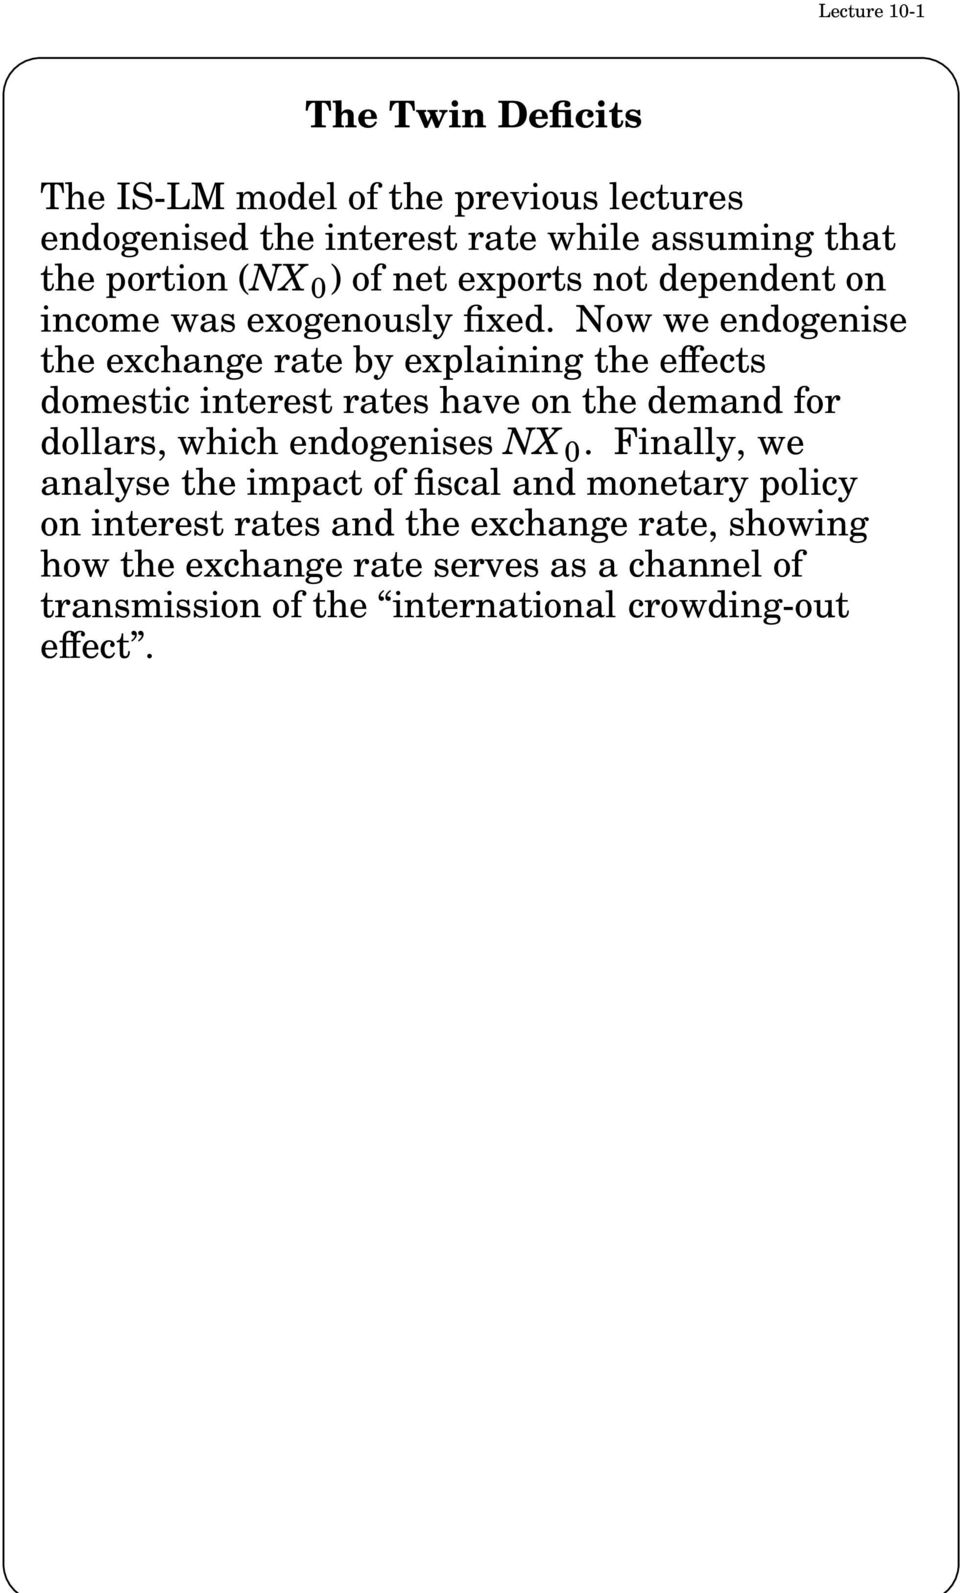 Now we endogenise the exchange rate by explaining the effects domestic interest rates have on the demand for dollars, which endogenises NX